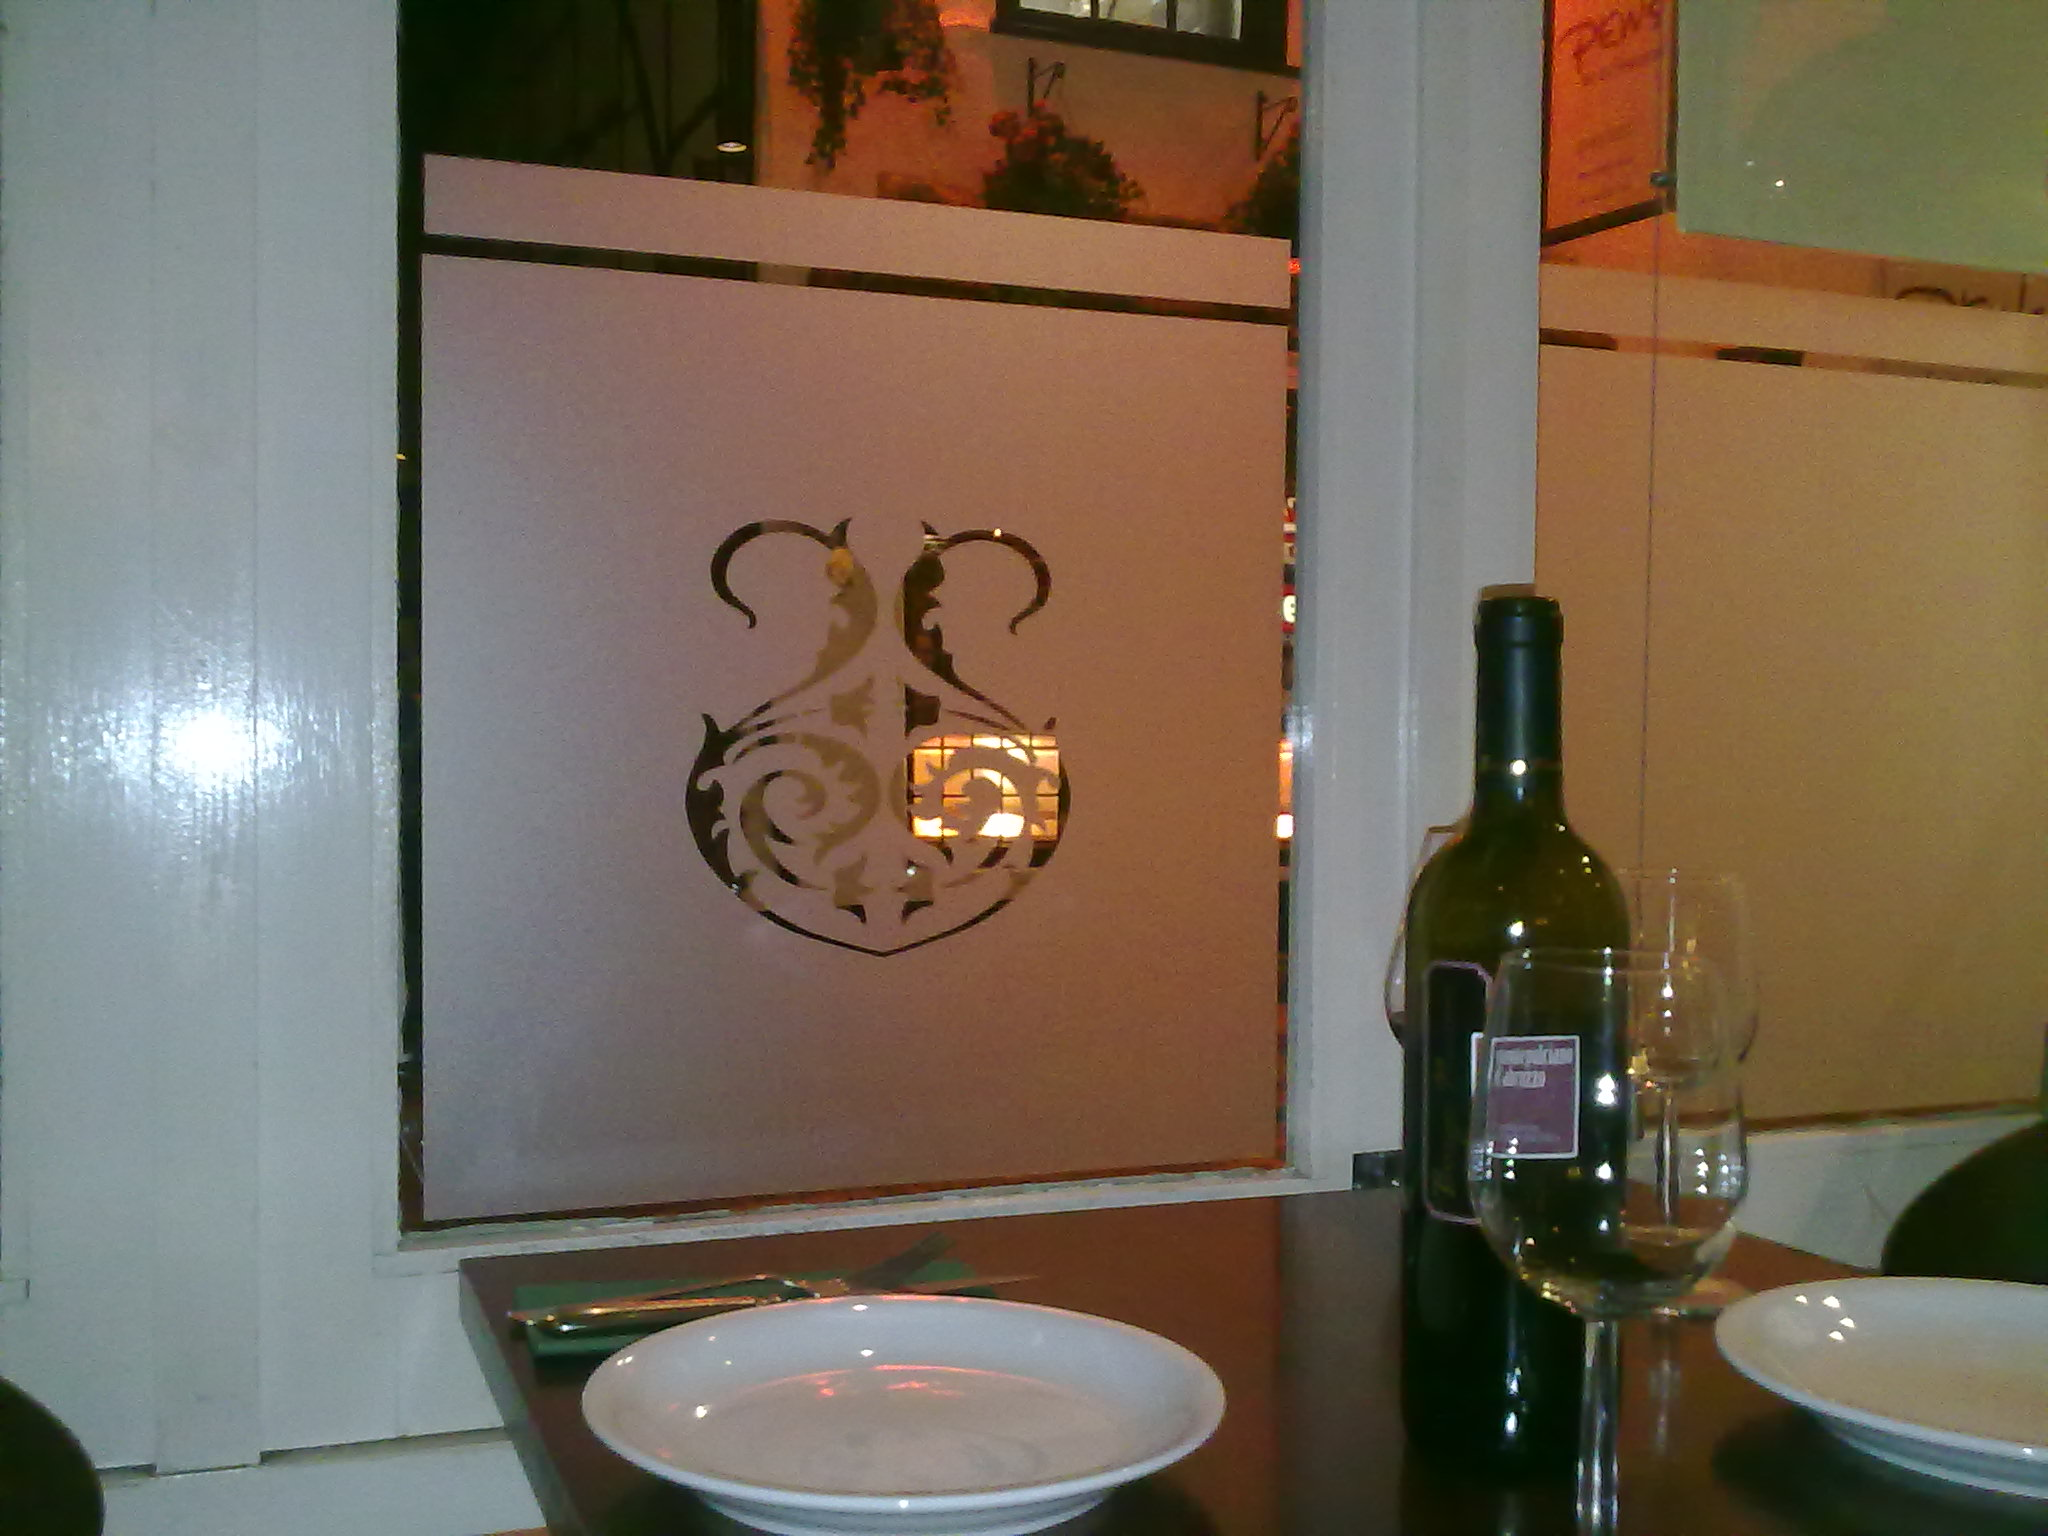 Etched glass effect to provide privacy and interest